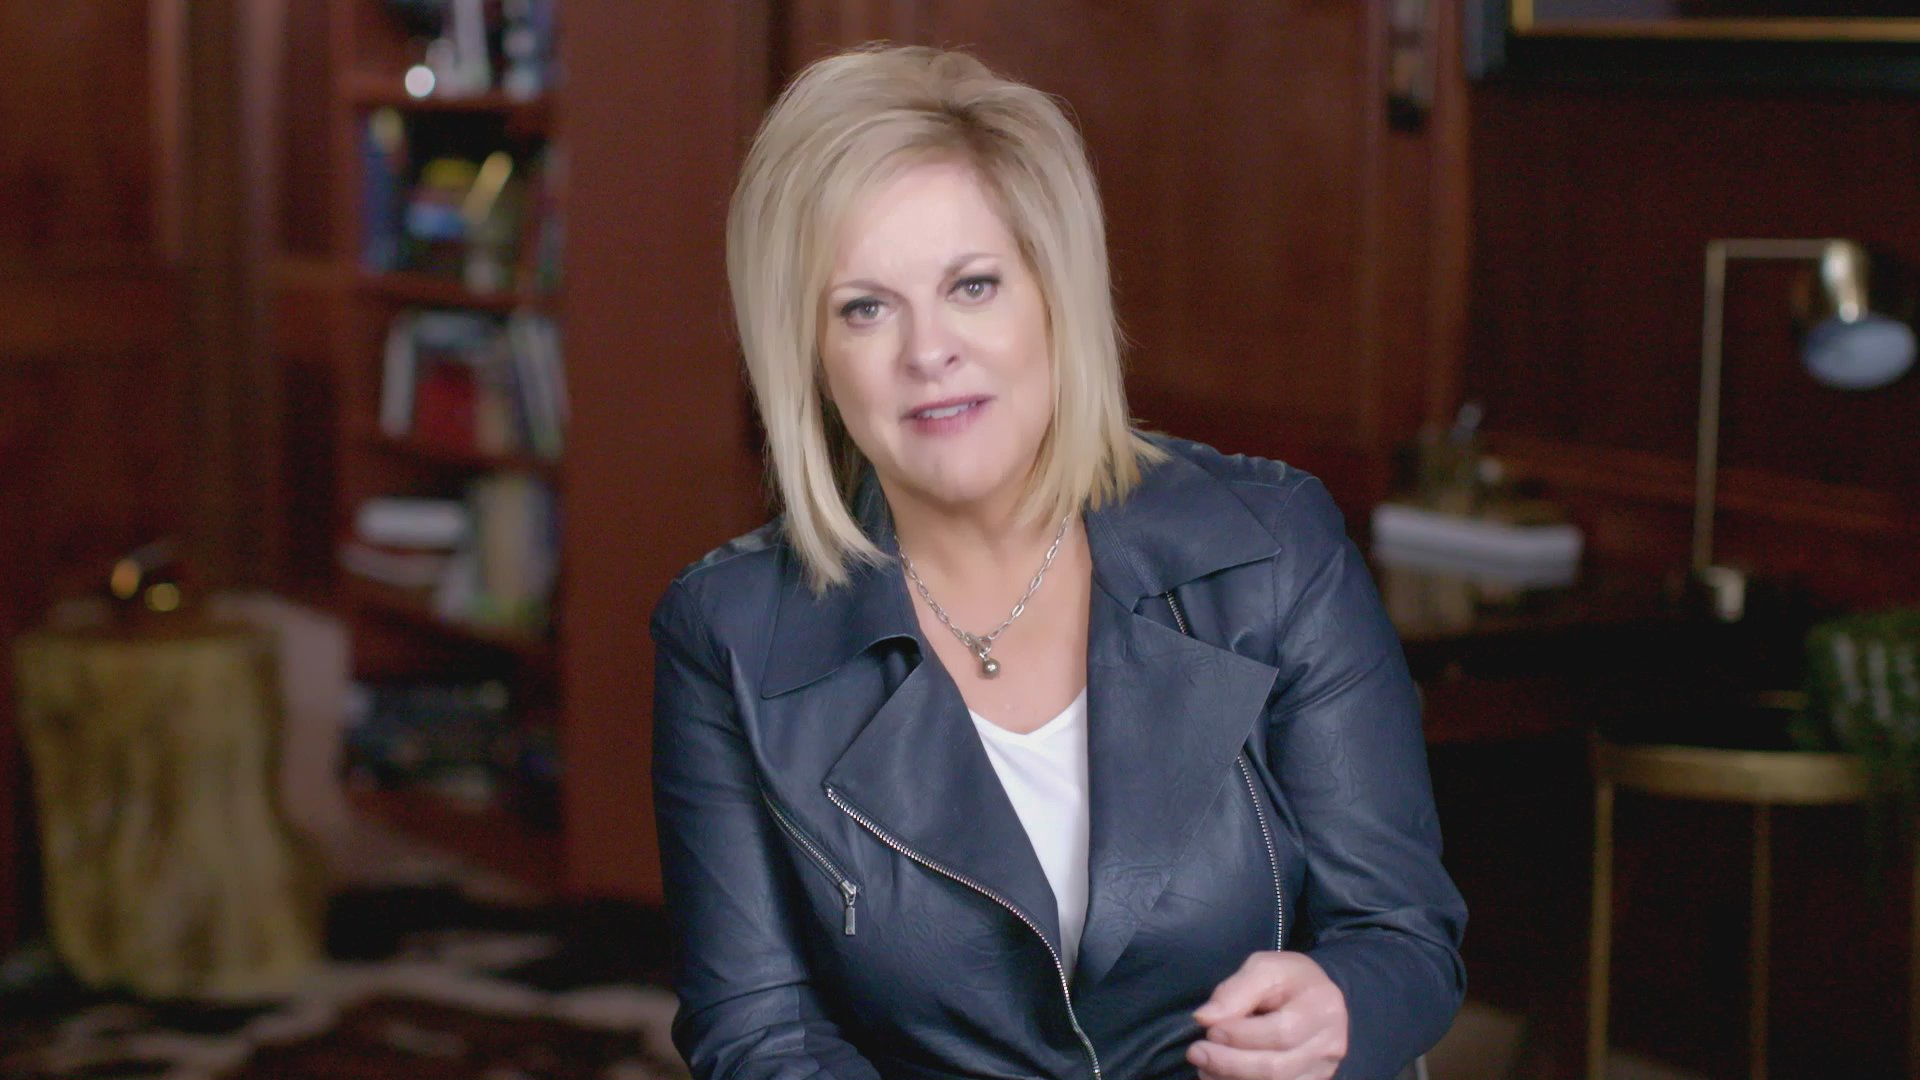 Injustice With Nancy Grace Bonus: Dave Dooley Had To Destroy The Evidence